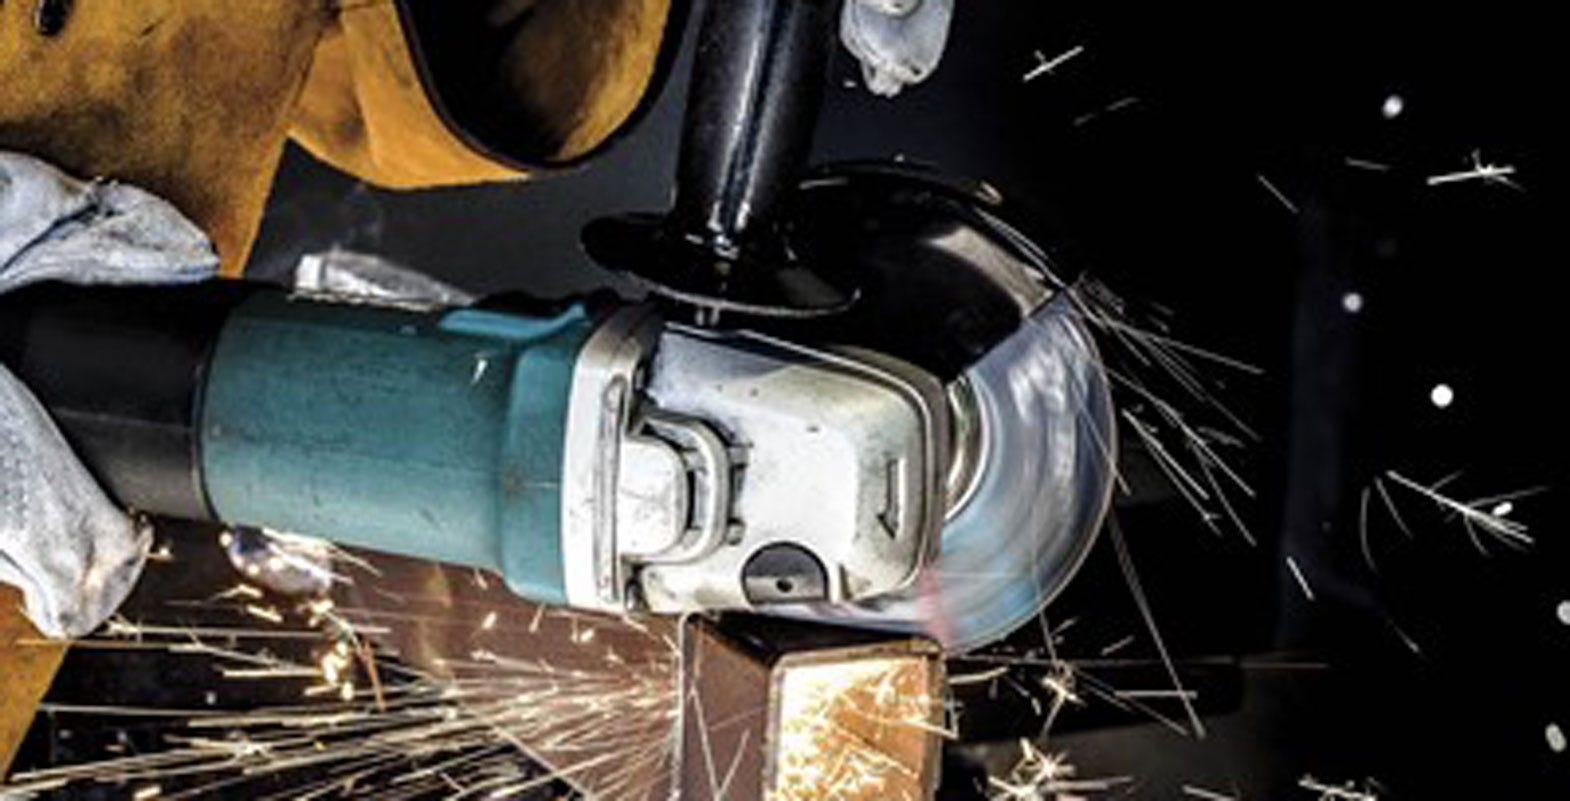 Take yourself further faster and protect your workers with the ultra-safe 'Razor-Hub' disc